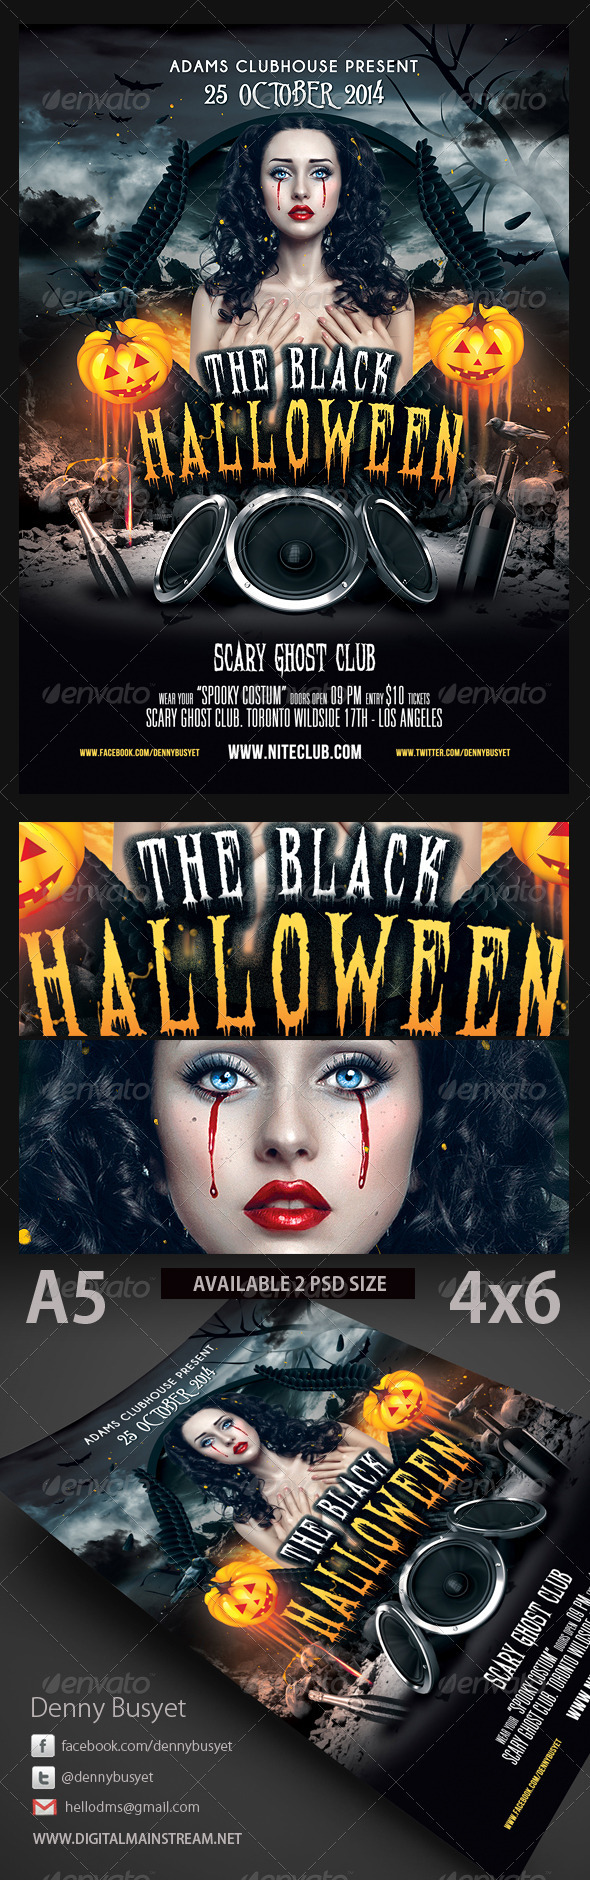 GraphicRiver The Black Halloween Psd Flyer Template 3189775